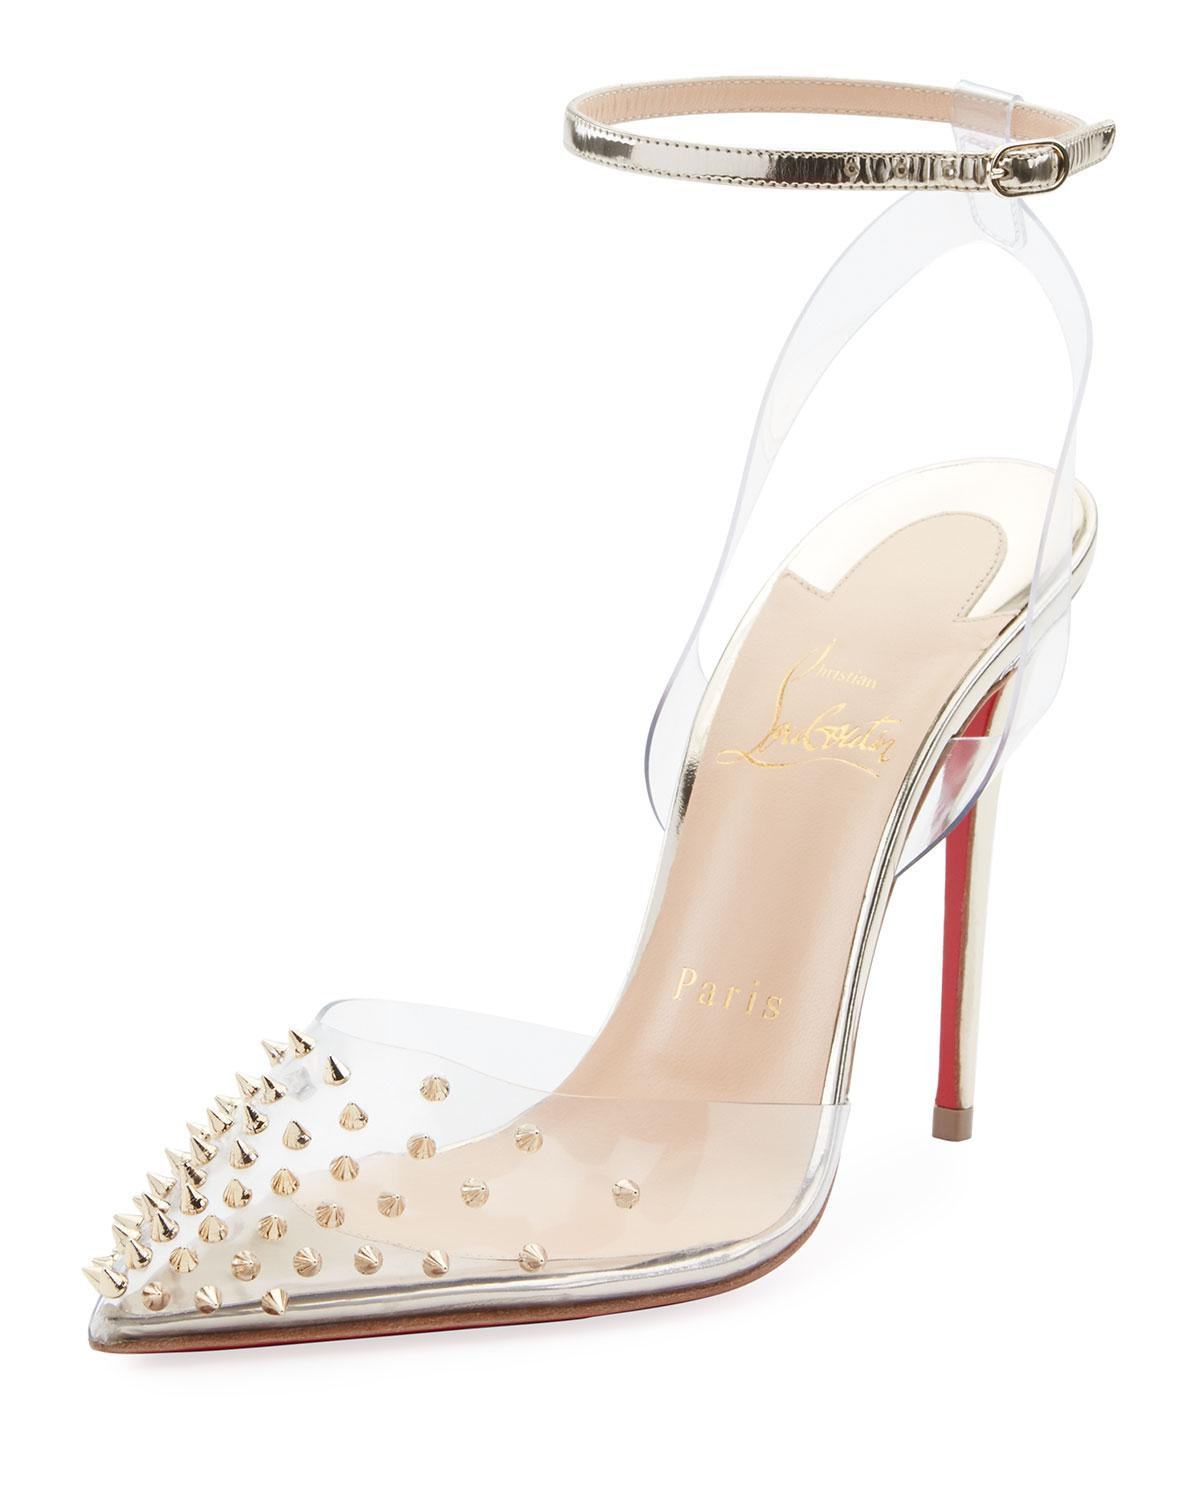 4e4f9d8ca Christian Louboutin Spikoo Spiked Ankle-wrap Red Sole Pumps in ...